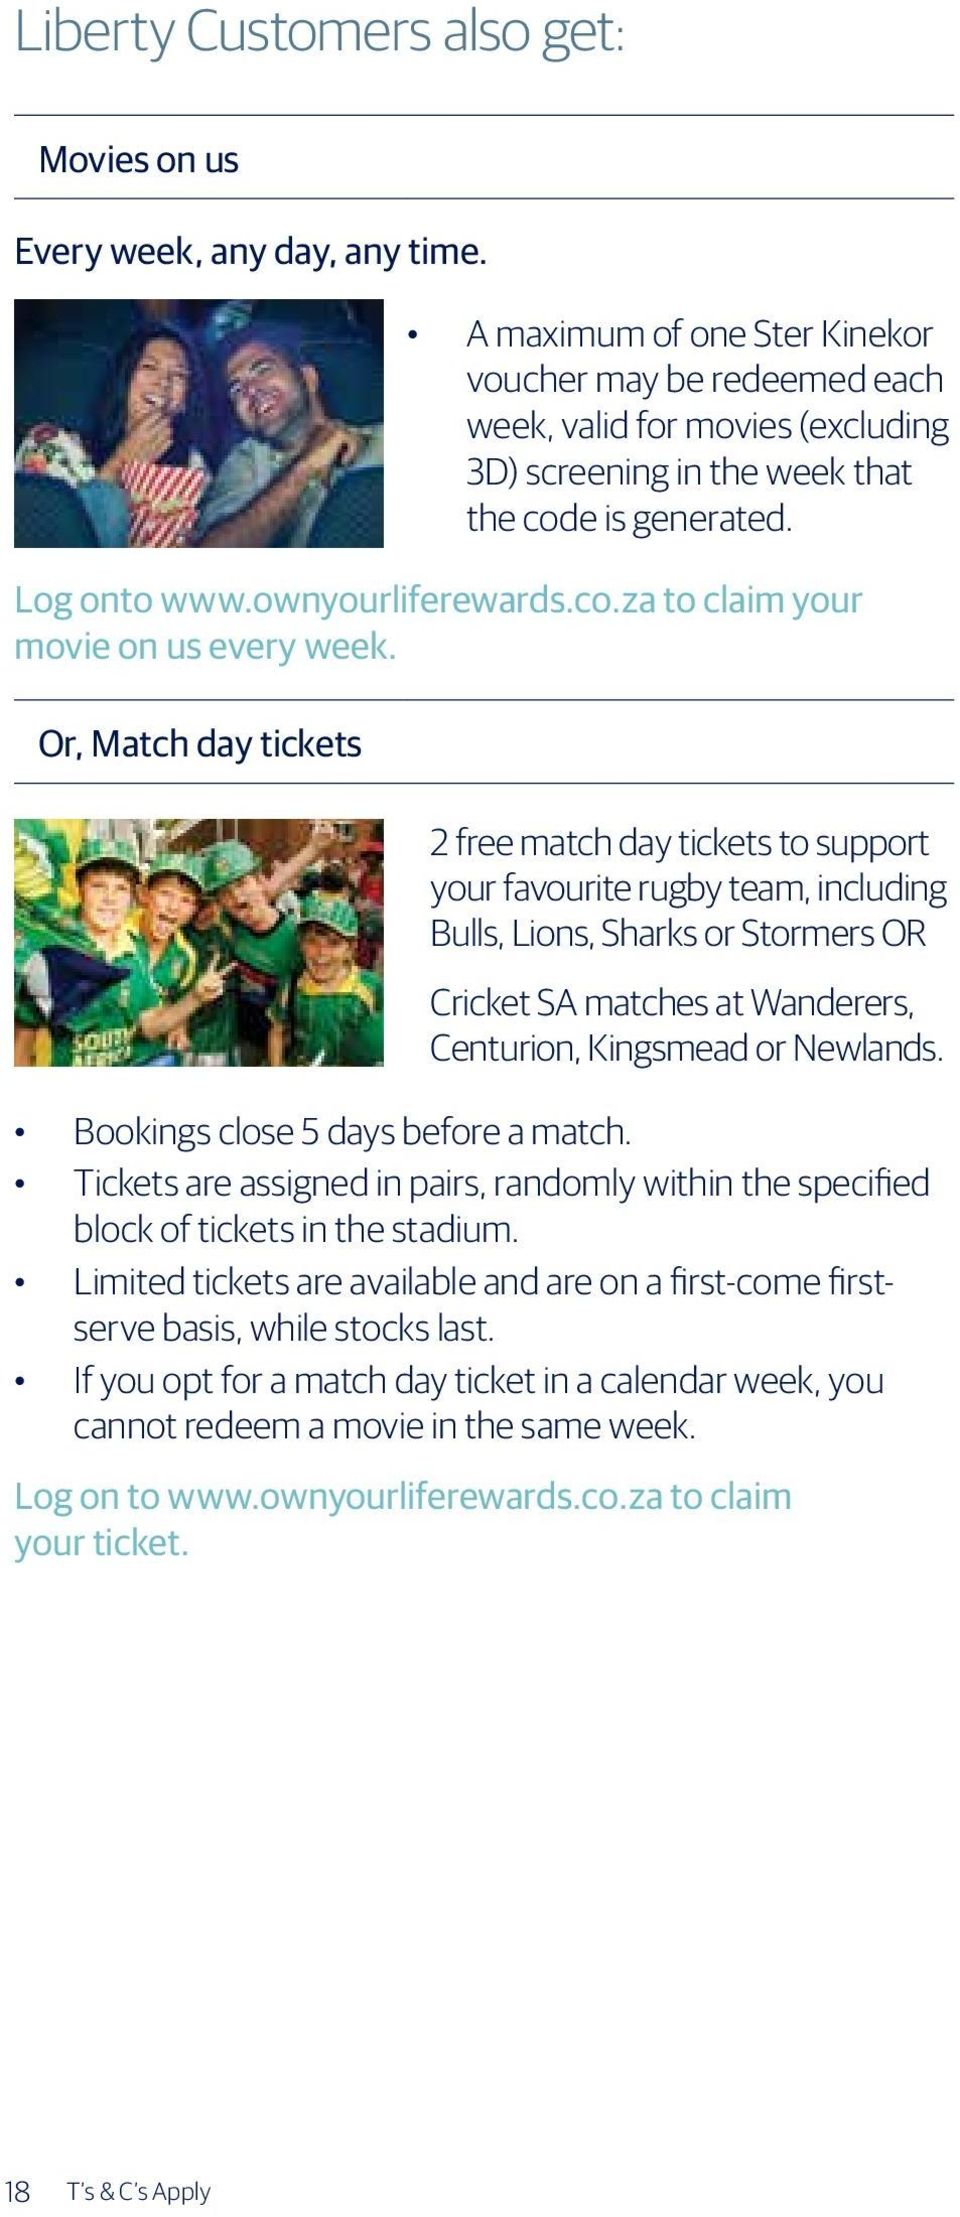 Or, Match day tickets 2 free match day tickets to support your favourite rugby team, including Bulls, Lions, Sharks or Stormers OR Cricket SA matches at Wanderers, Centurion, Kingsmead or Newlands.